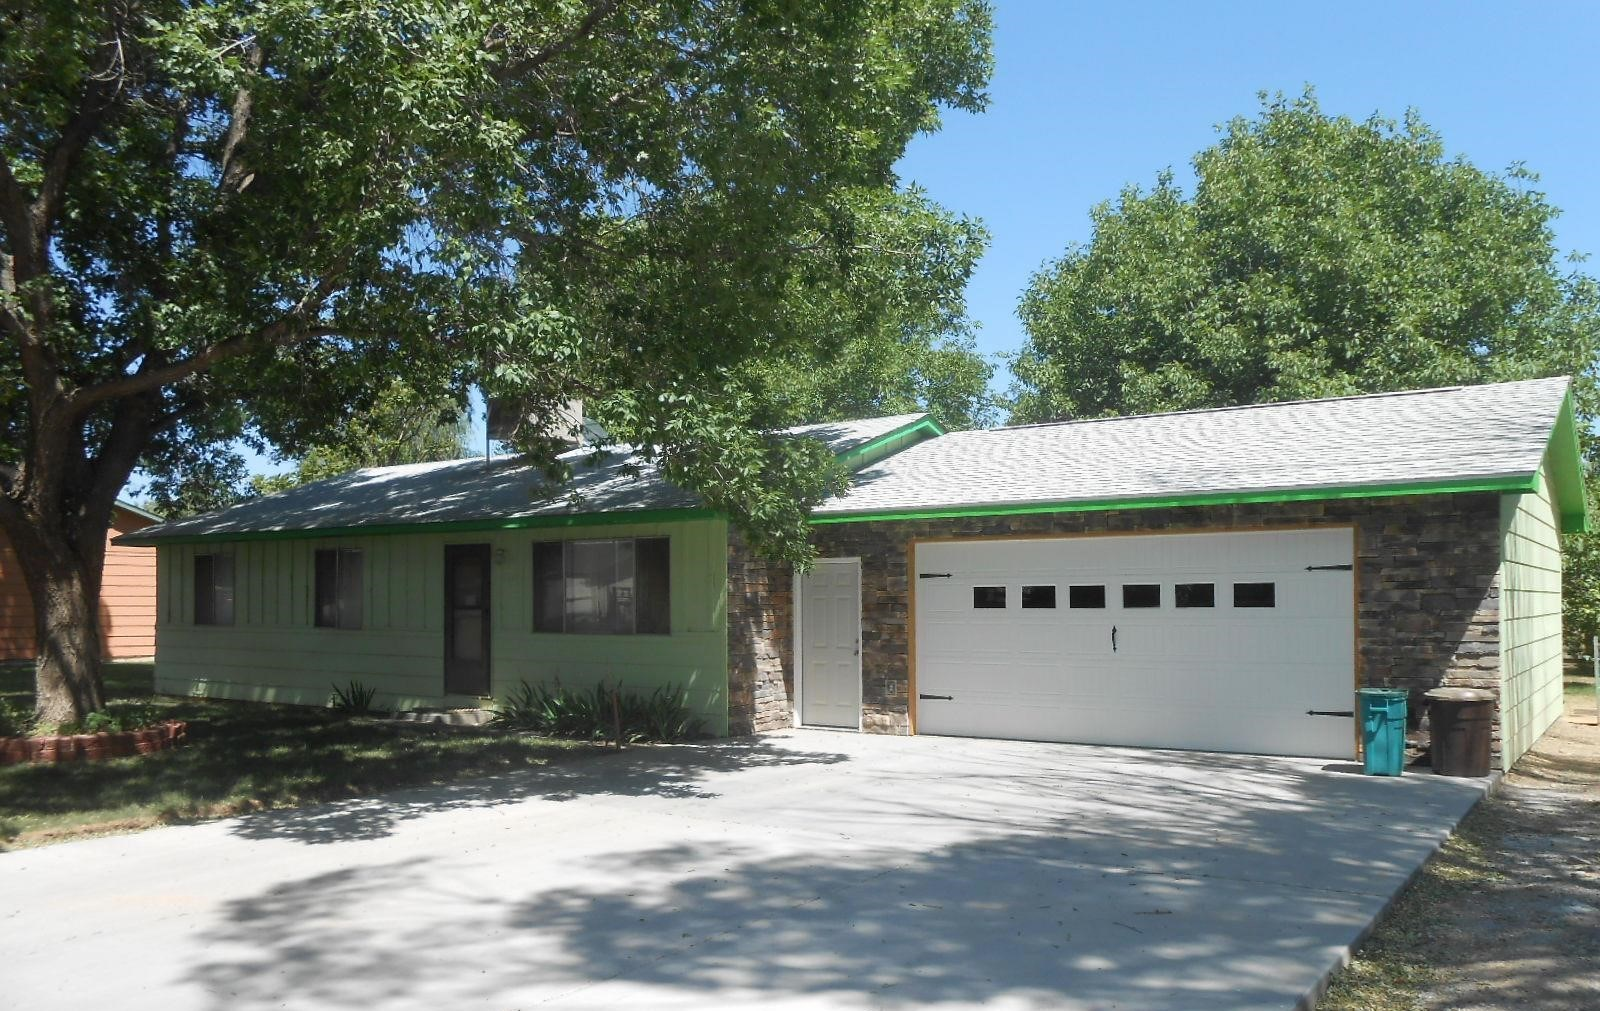 Grand Junction Home For Sale on Large Lot - $175,000